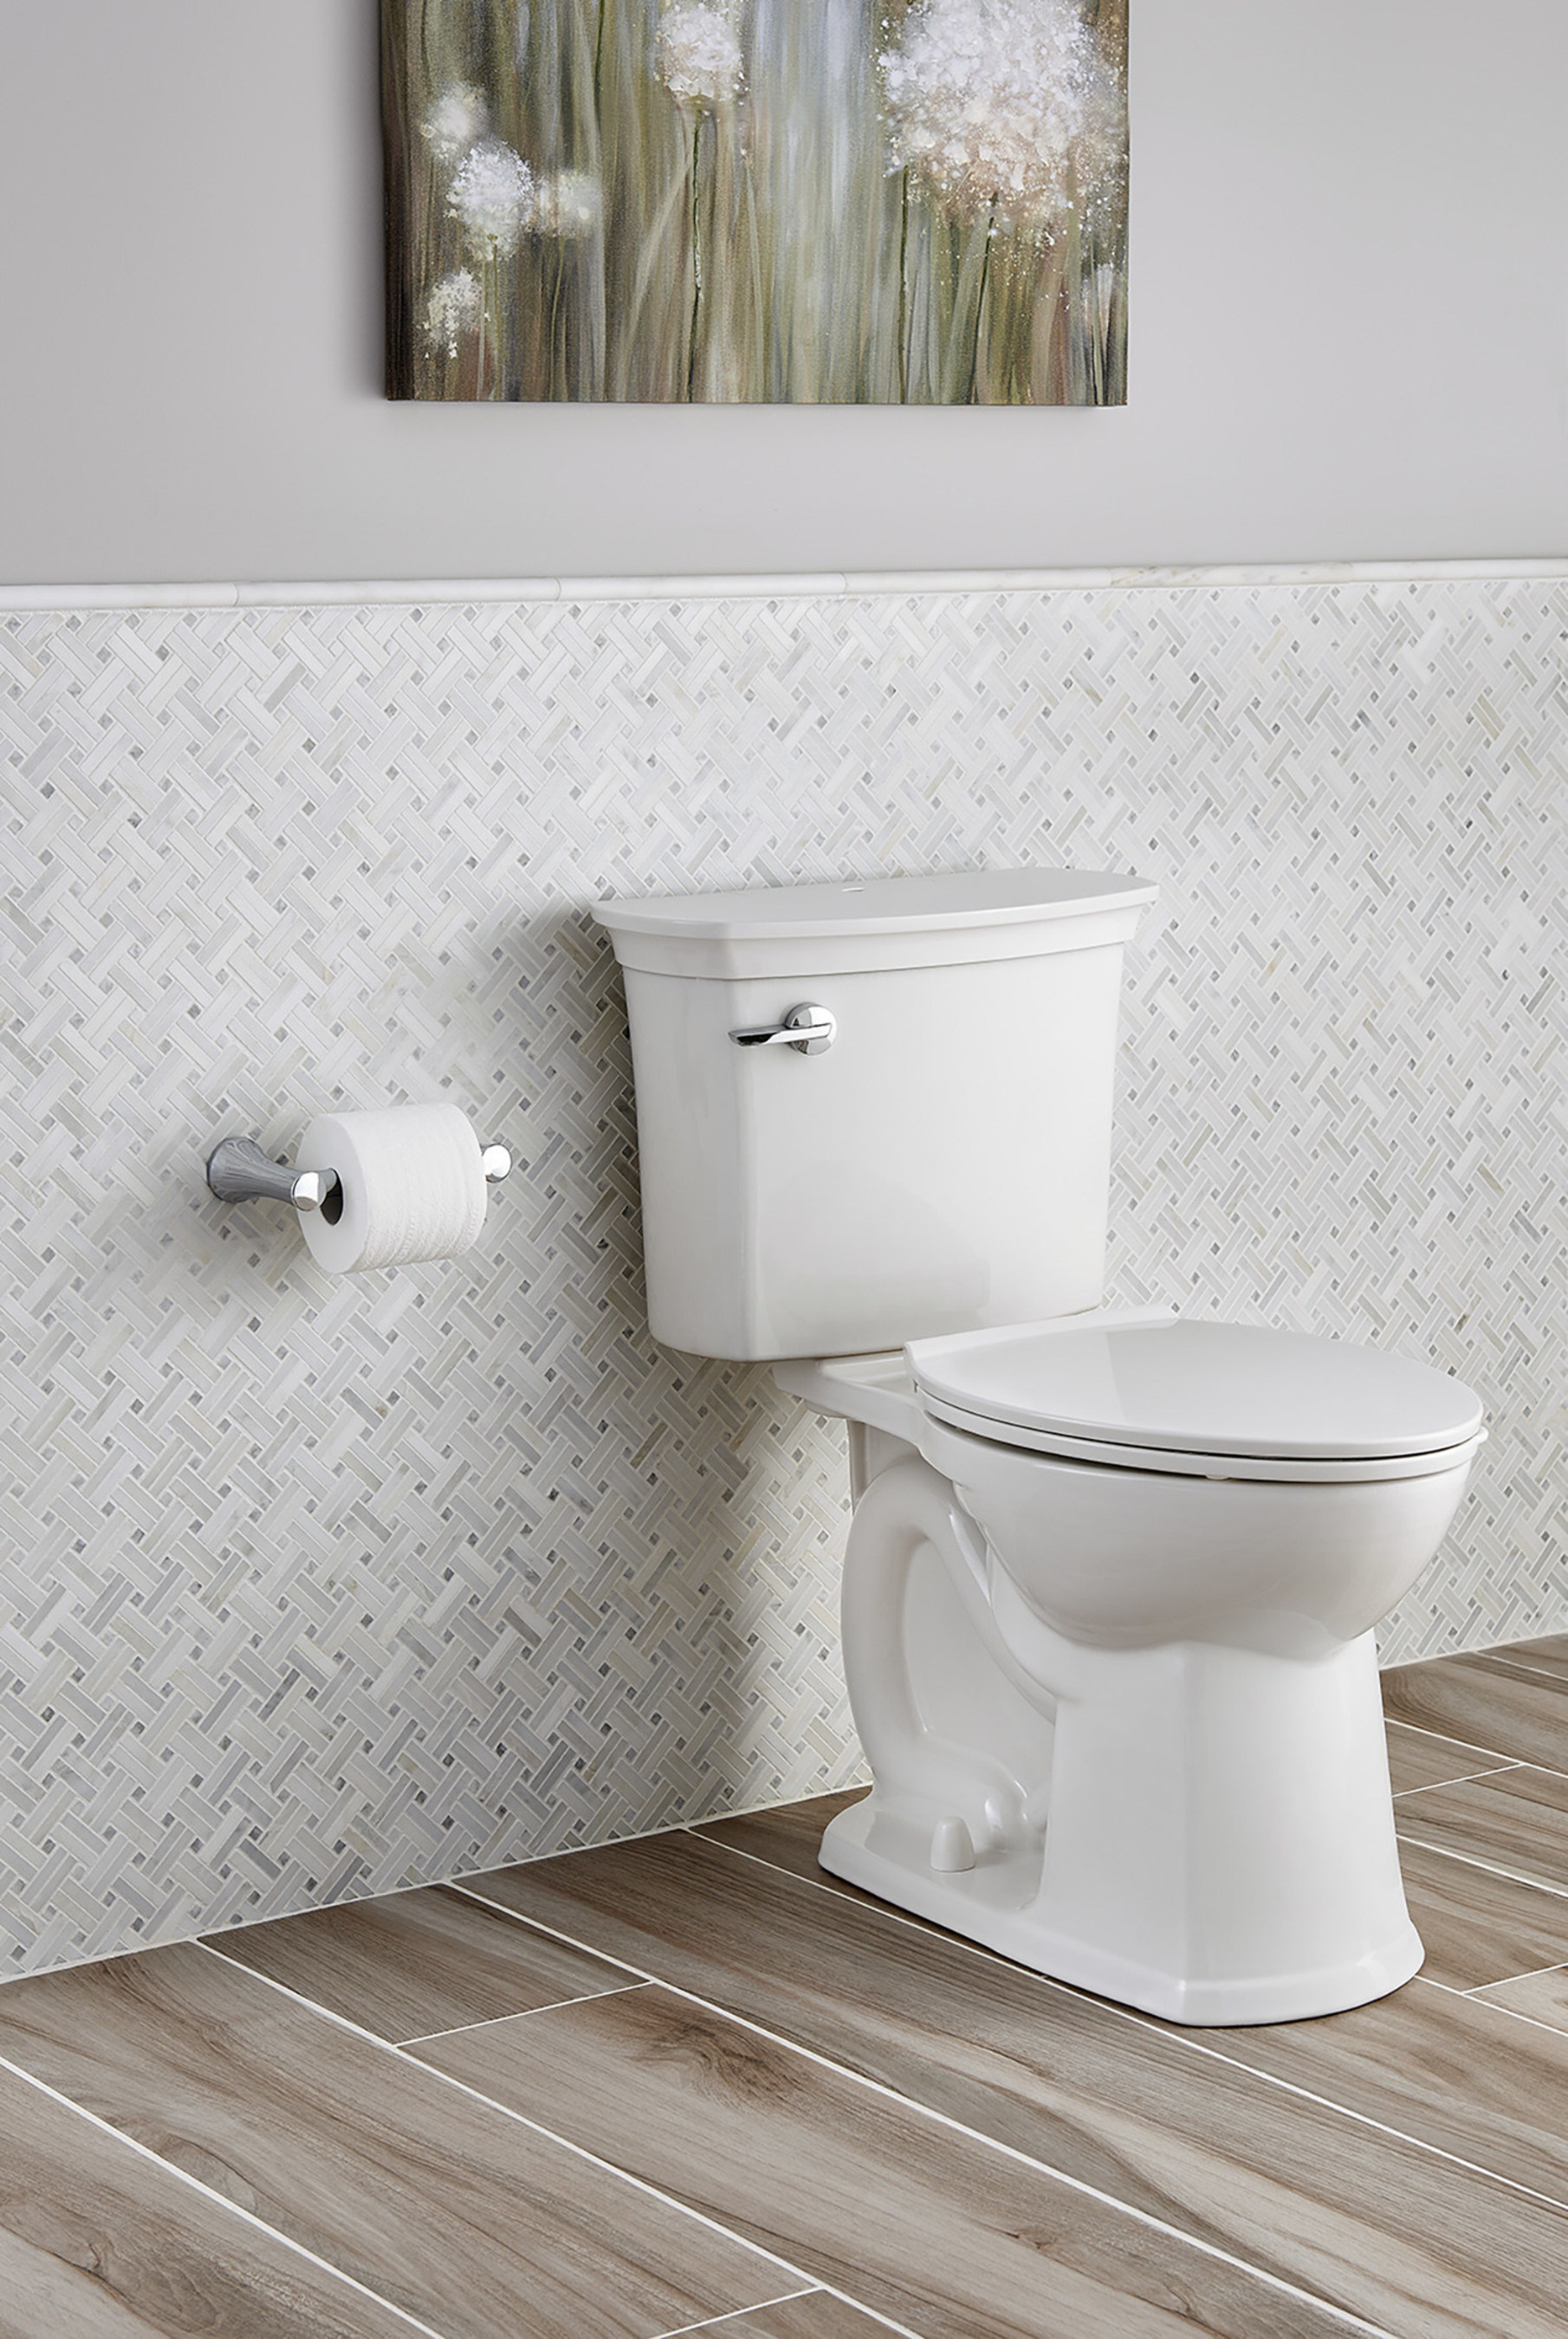 New Acticlean Toilet From American Standard Stays Sparkling